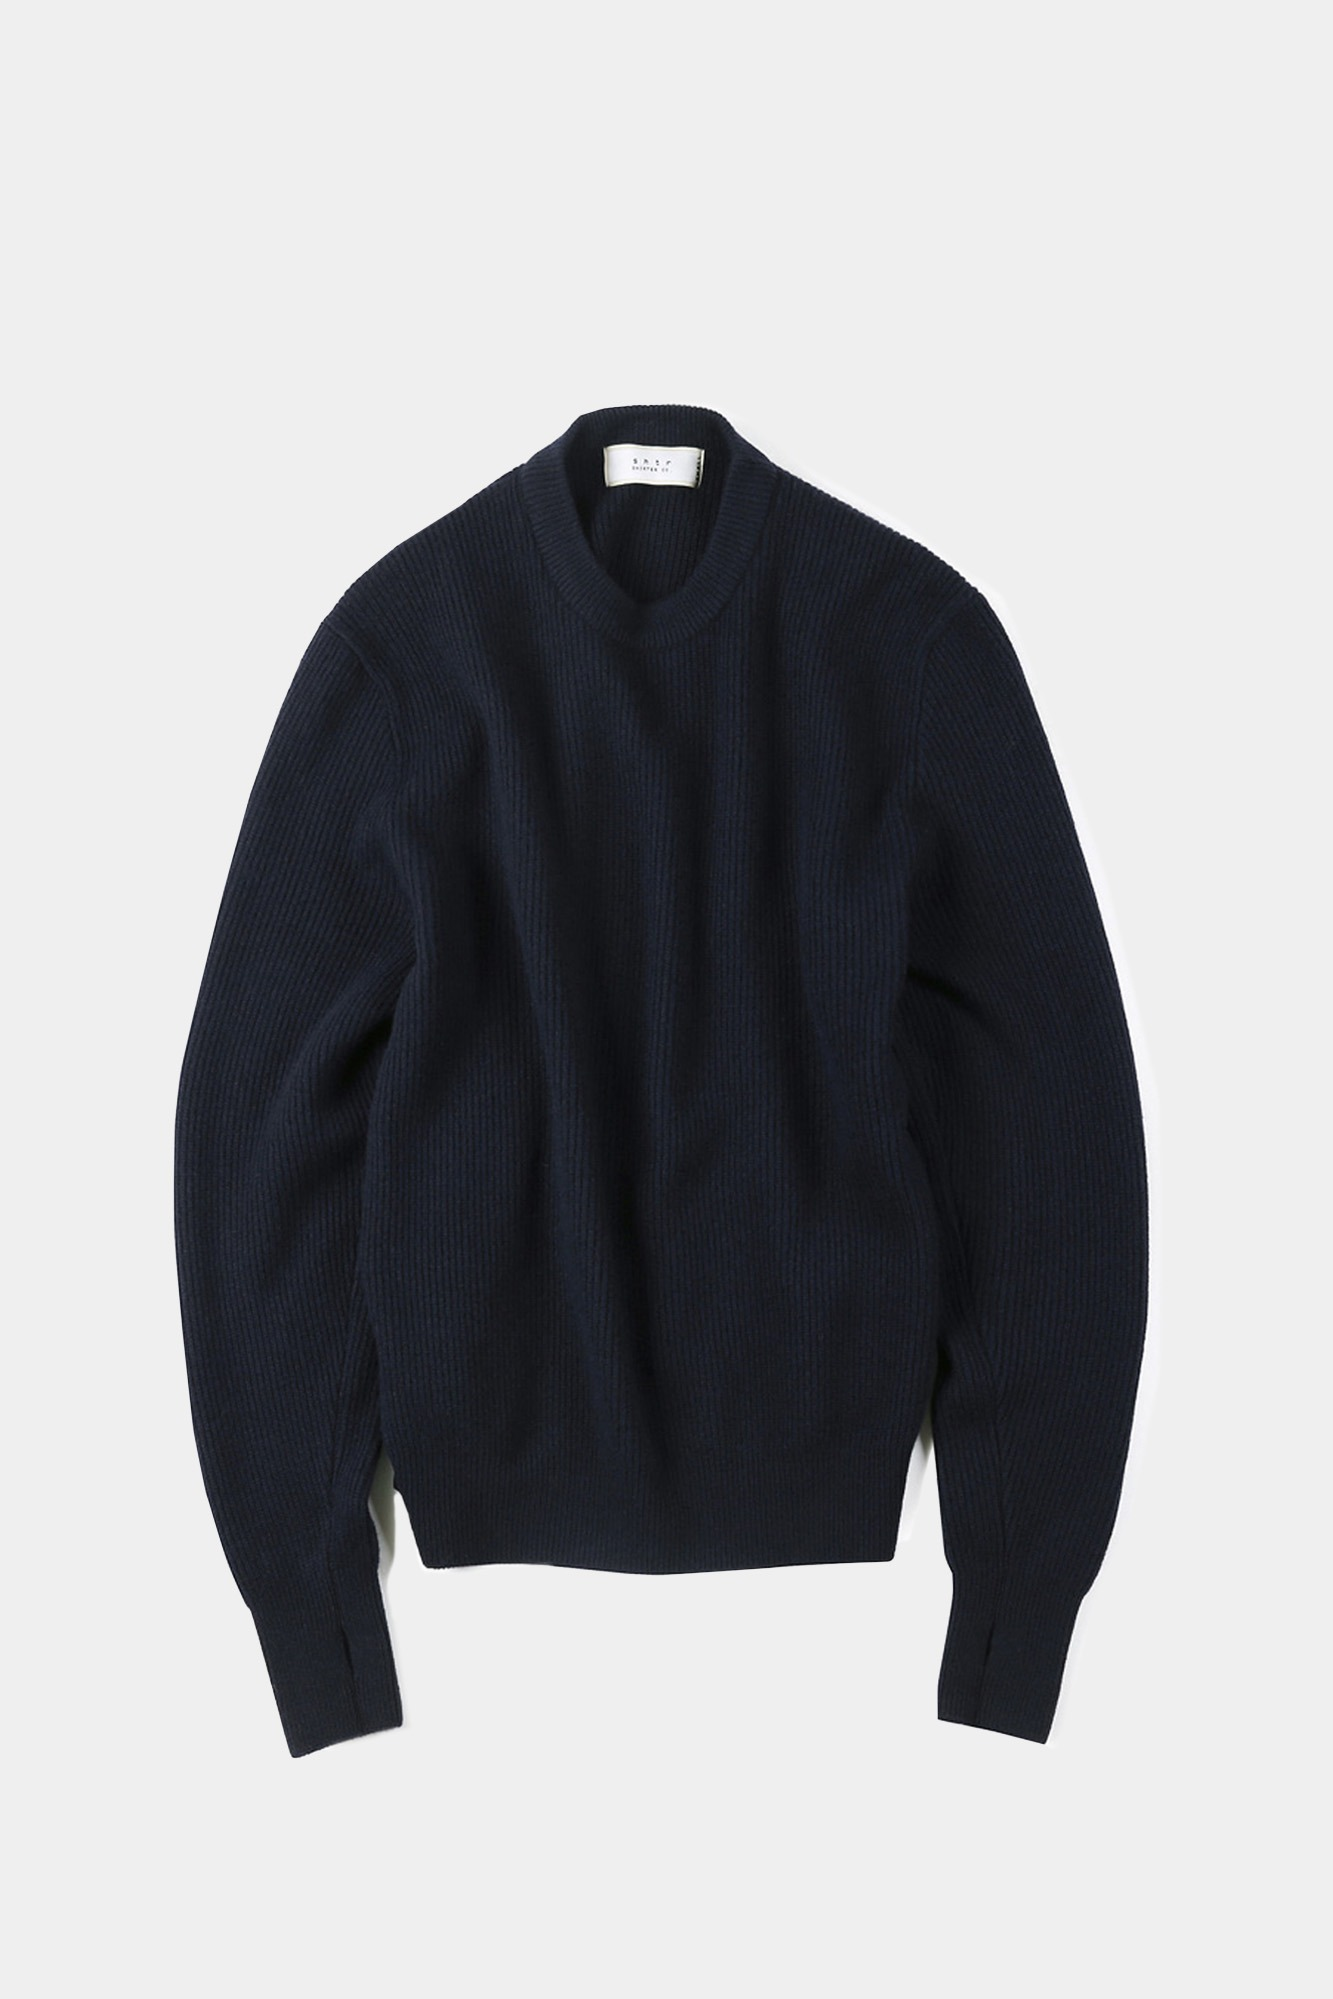 "SHIRTER Wanderer Crew Neck Knit ""Dark Navy"""